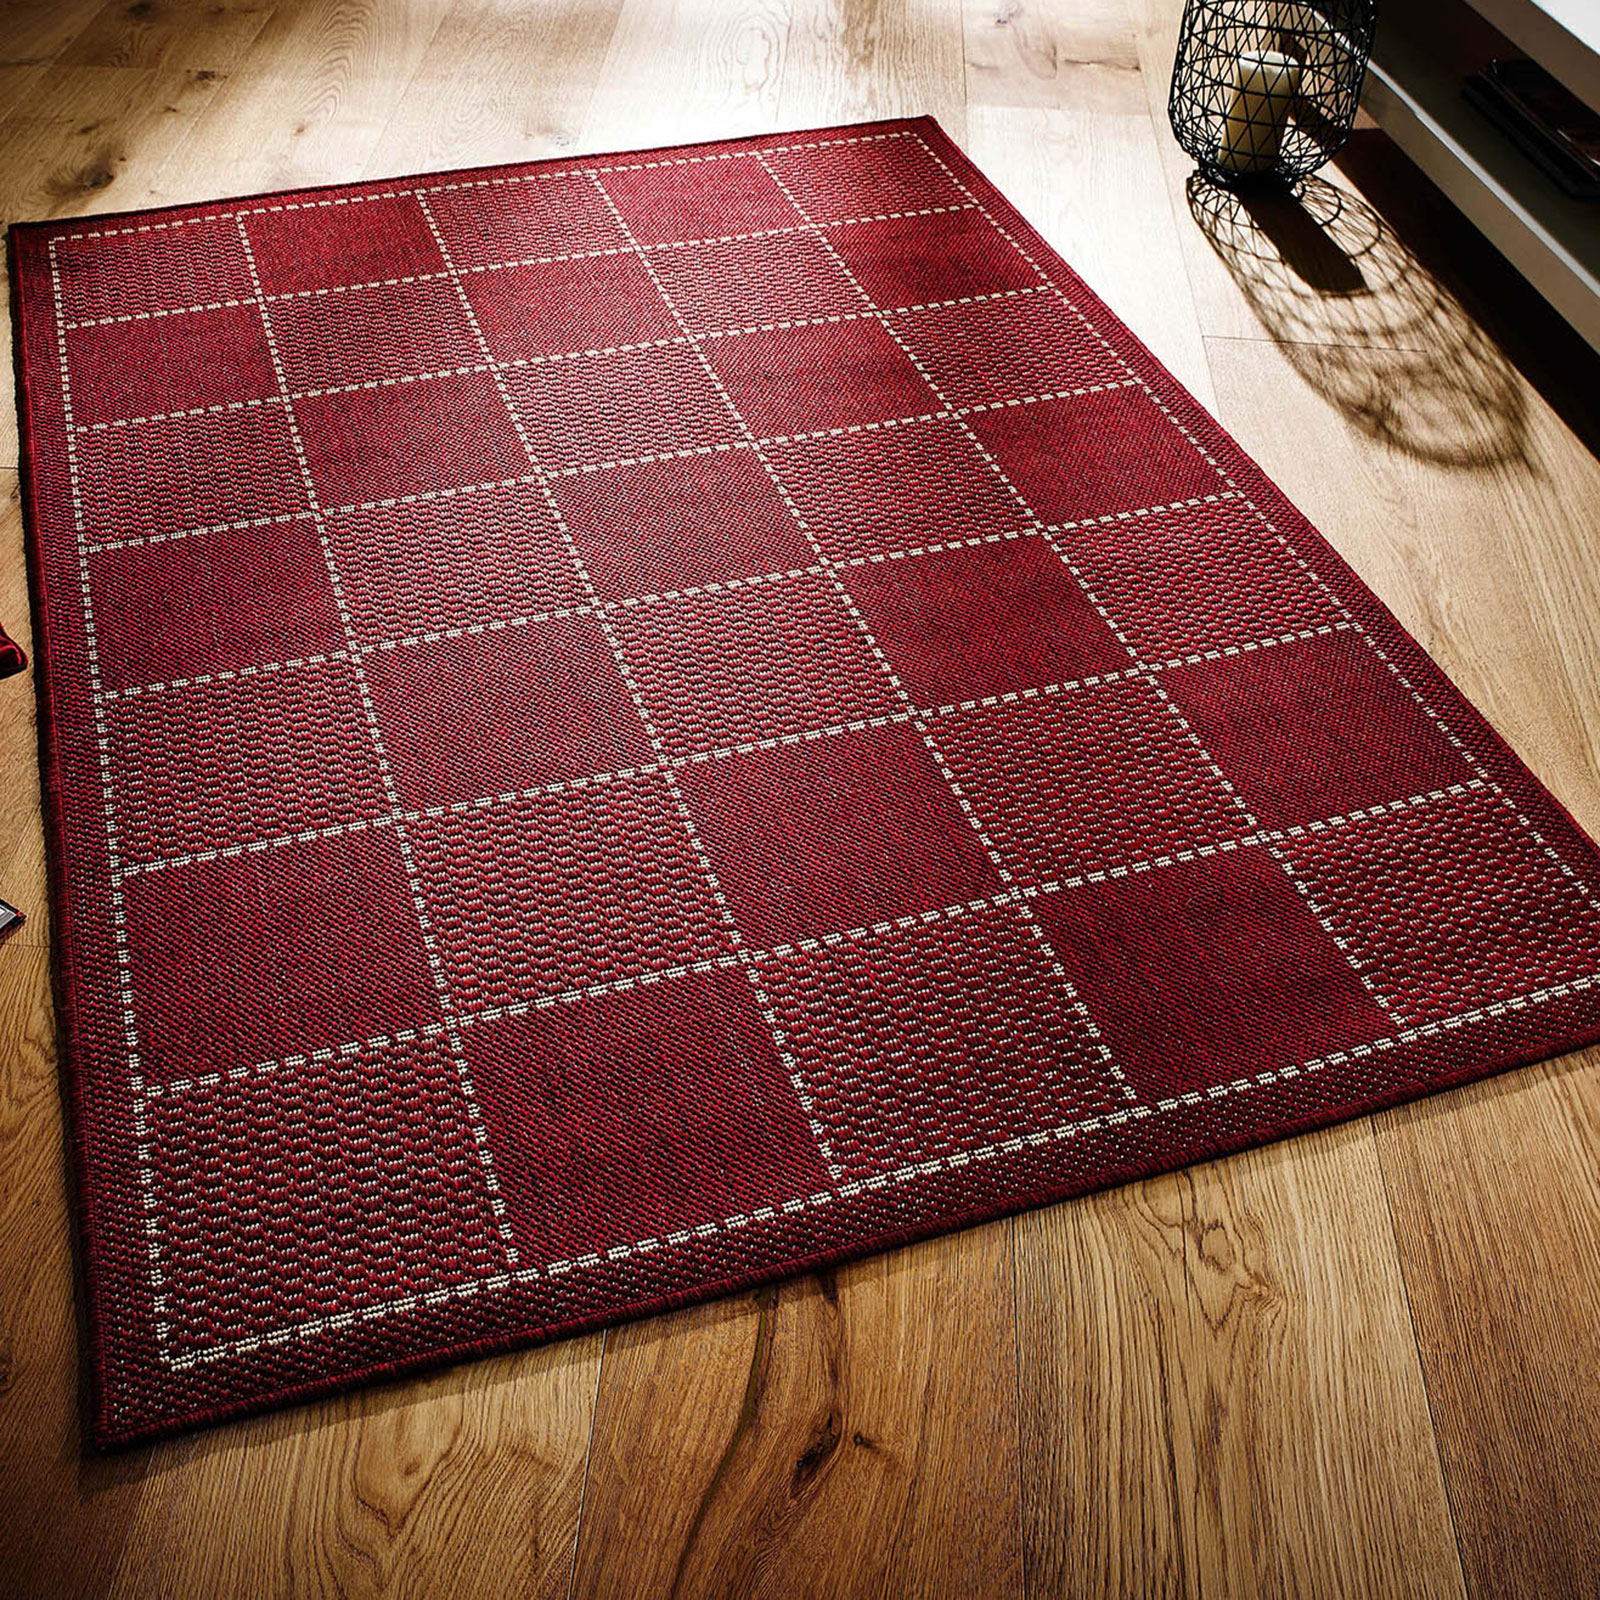 Checked-Flatweave-Red-Roomshot.jpg